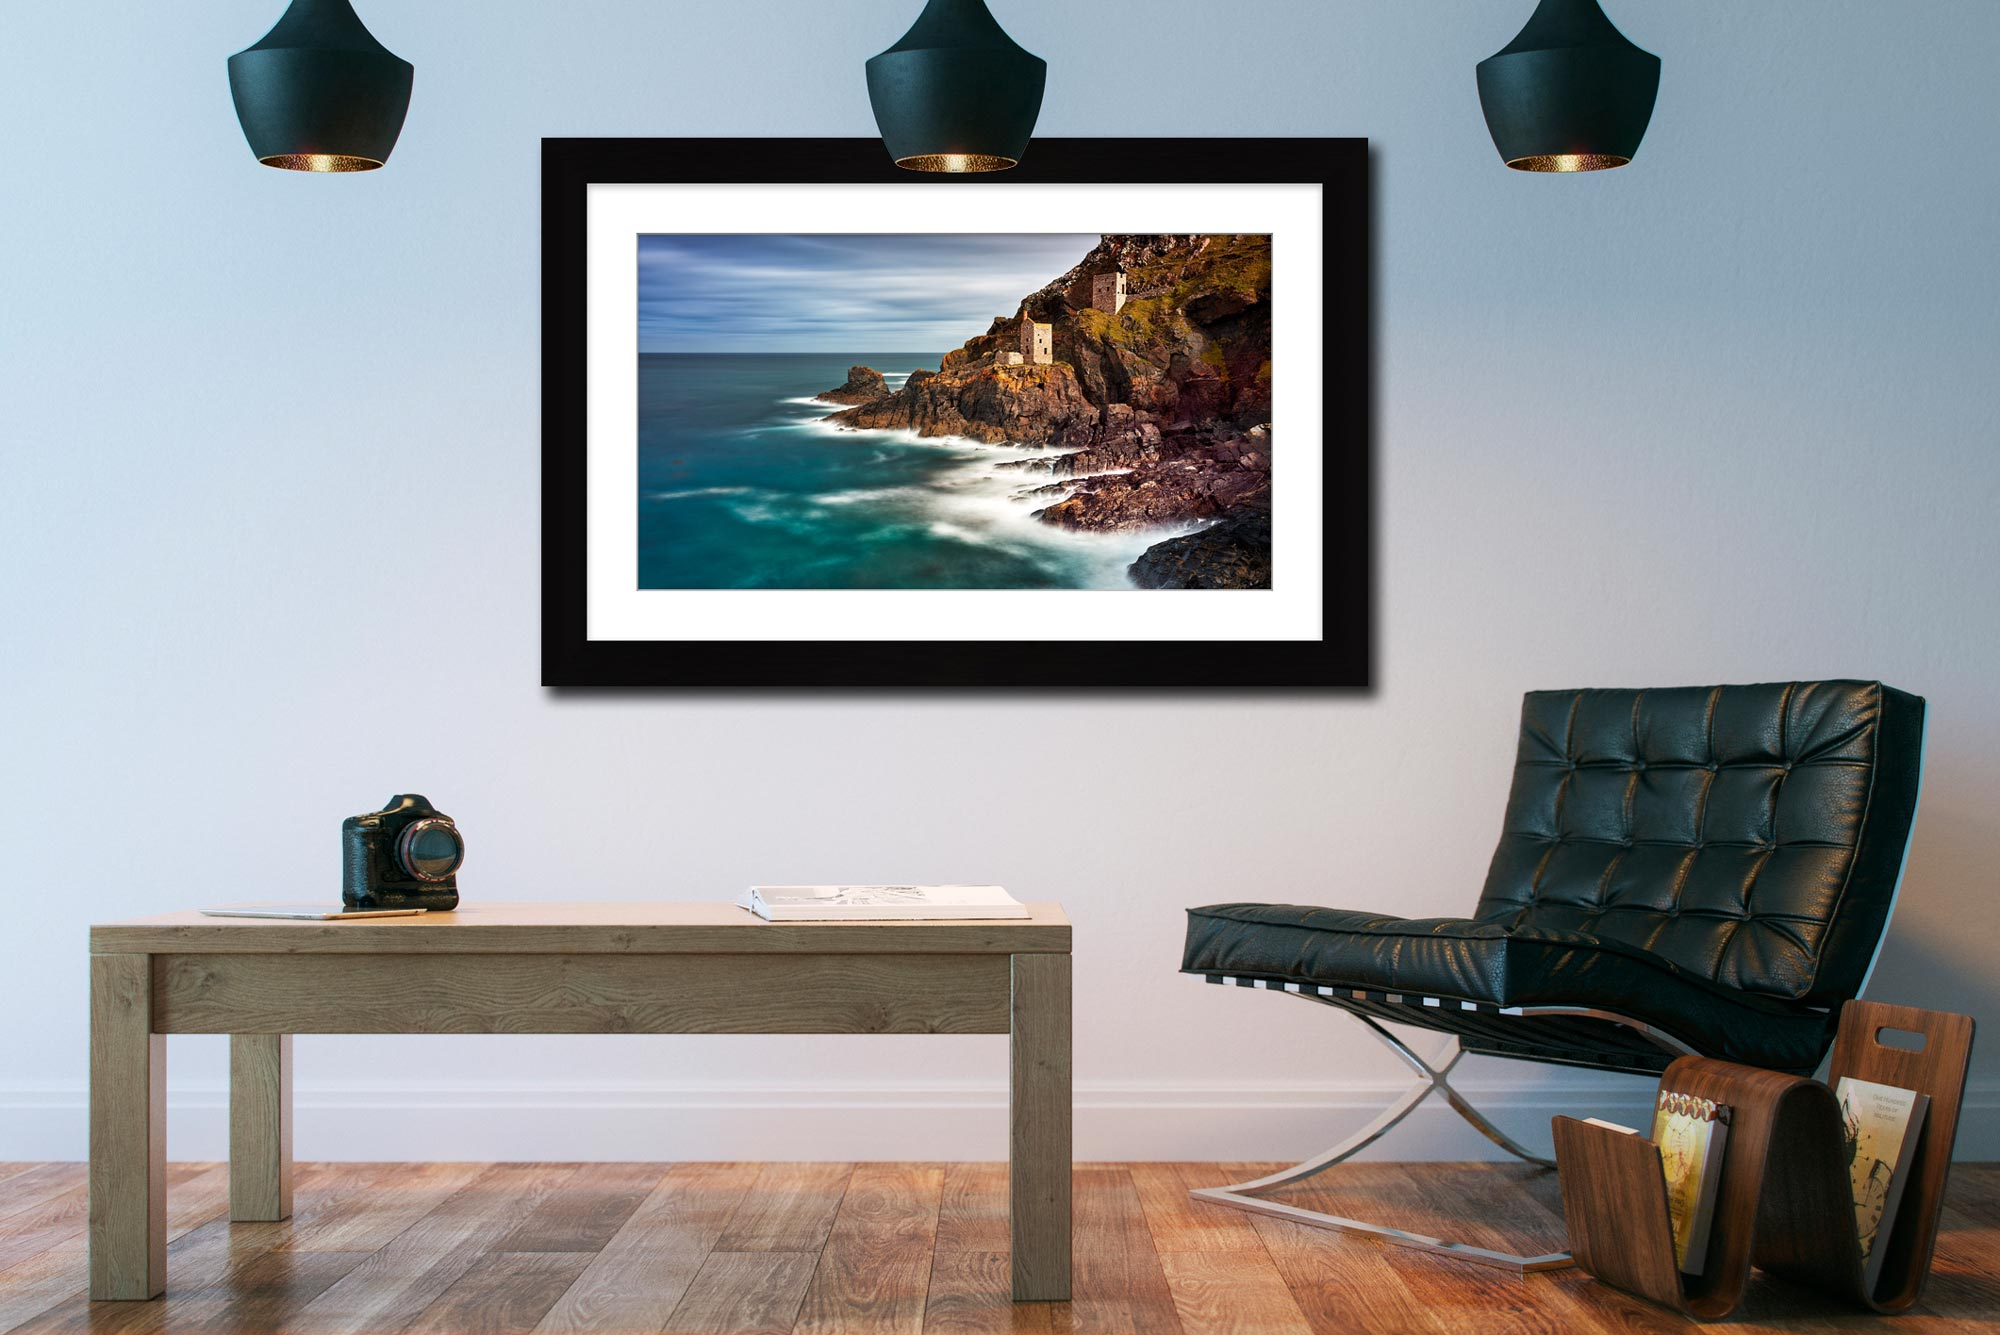 Botallack Mines in the Autumn Sunshine - Framed Print with Mount on Wall